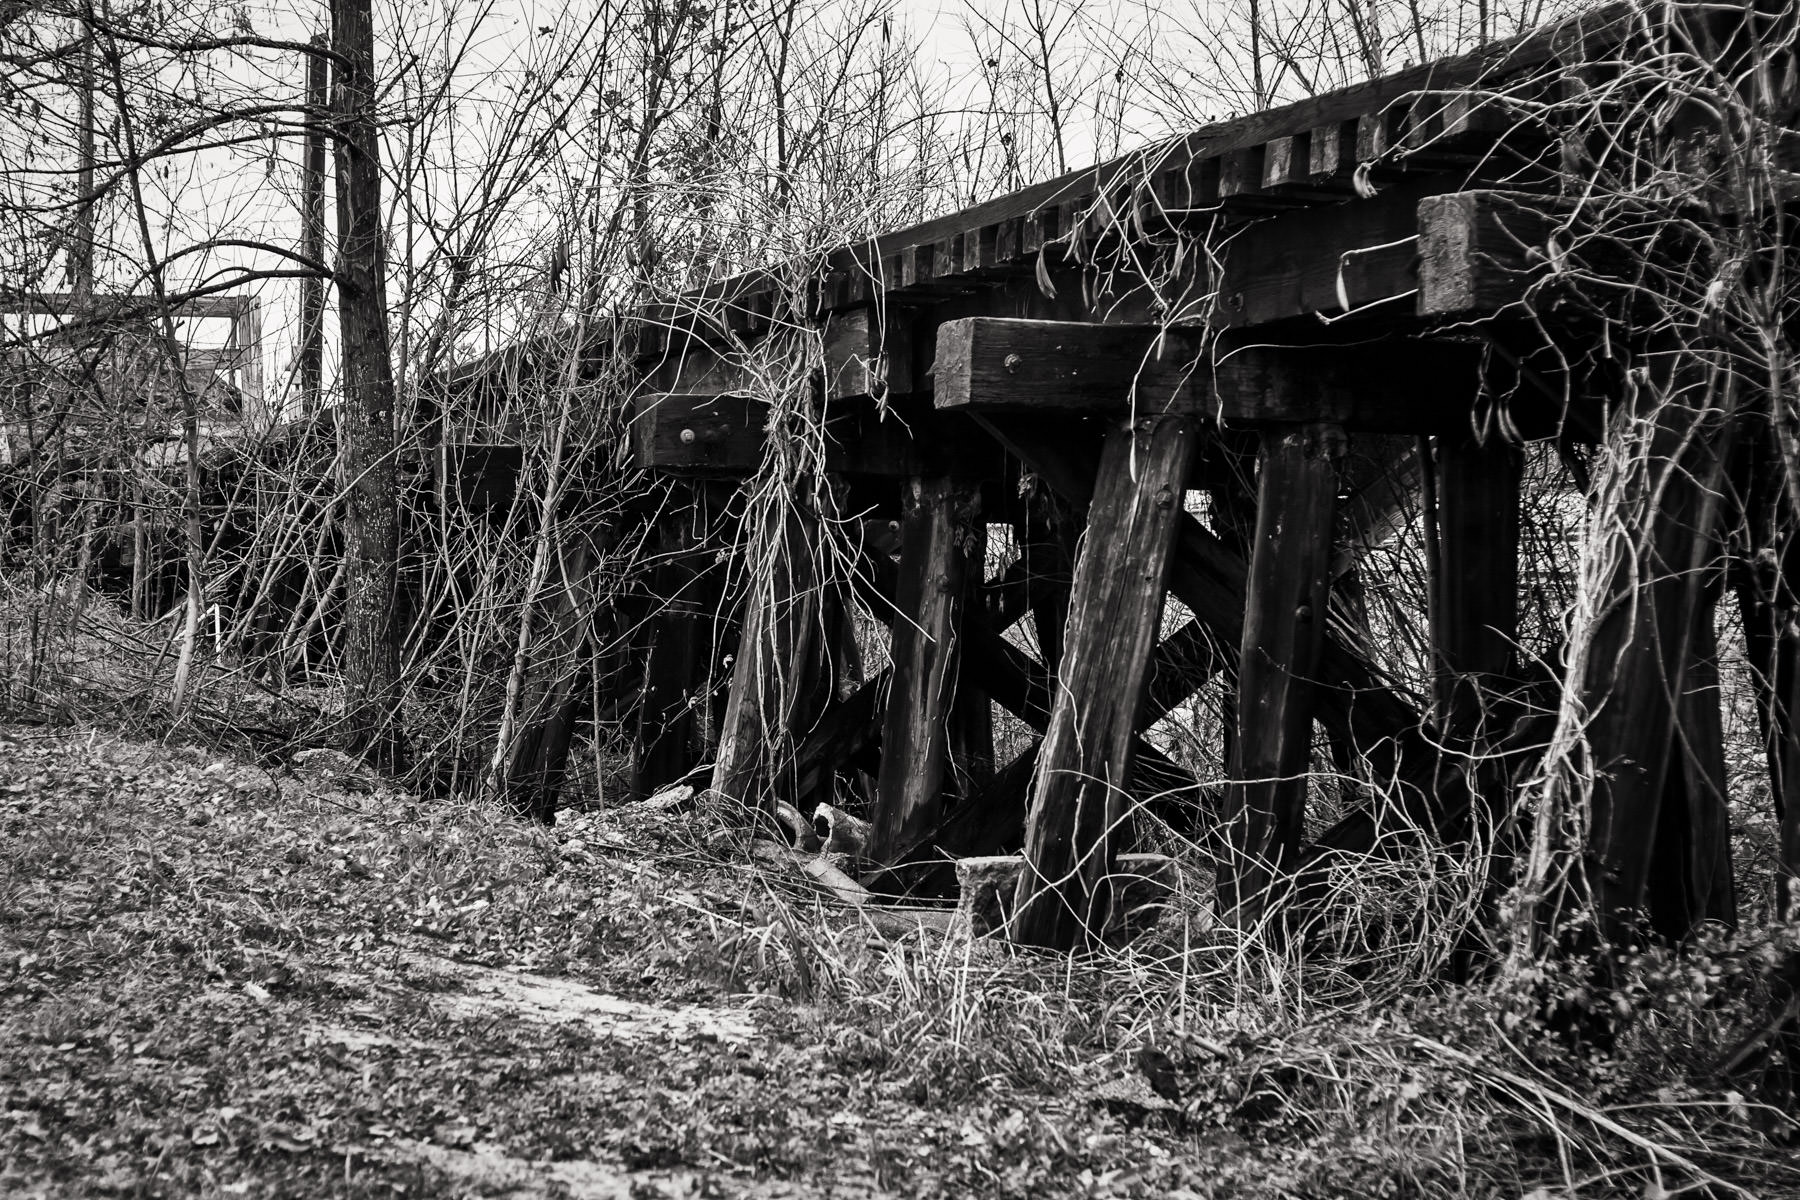 An abandoned and decaying railroad bridge in Jefferson, Texas.